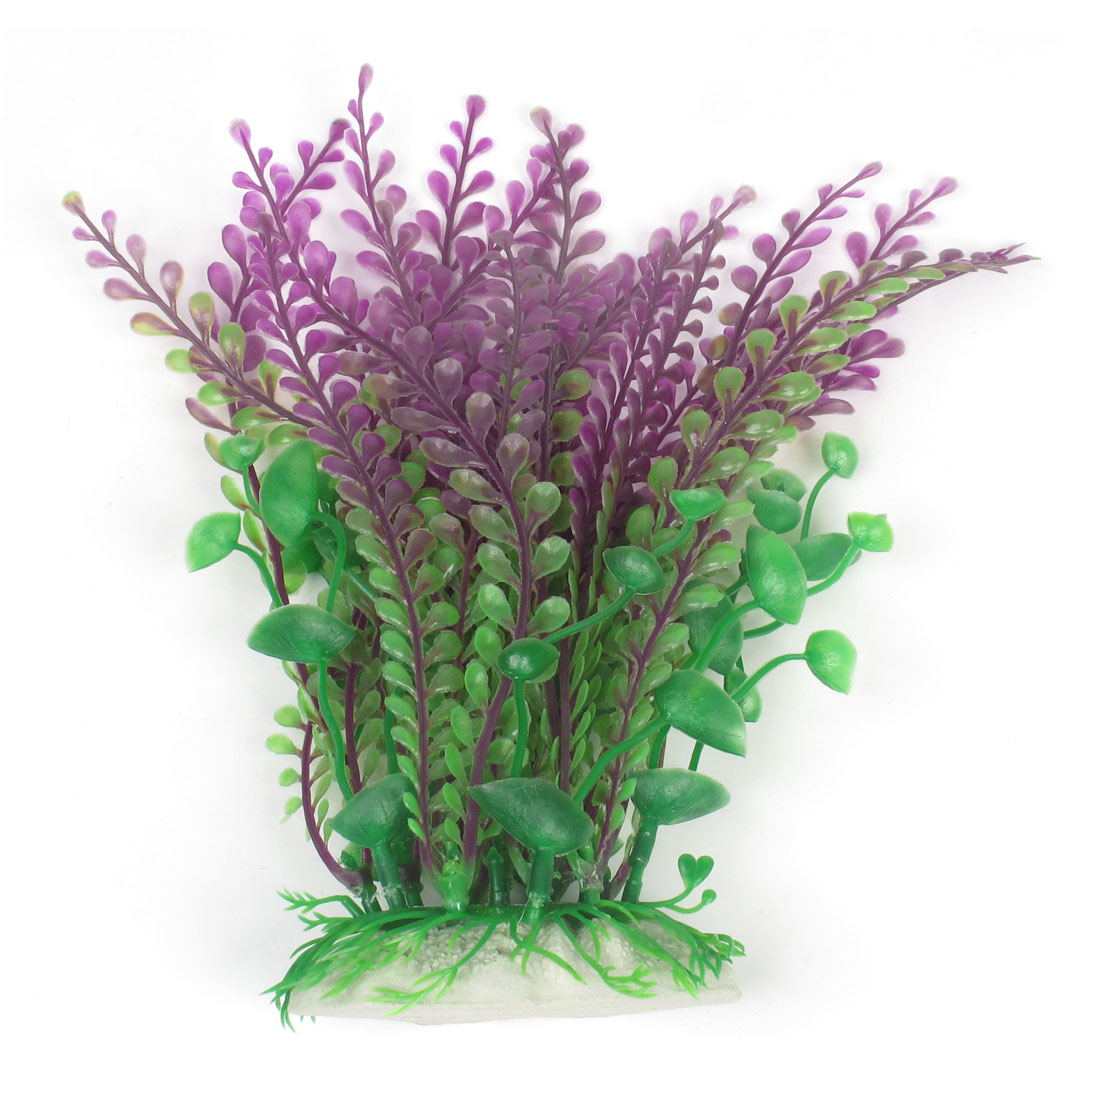 "Aquarium Landscaping Imitated Float Plant Grass Decor Fuchsia Green 8.3"" Height"